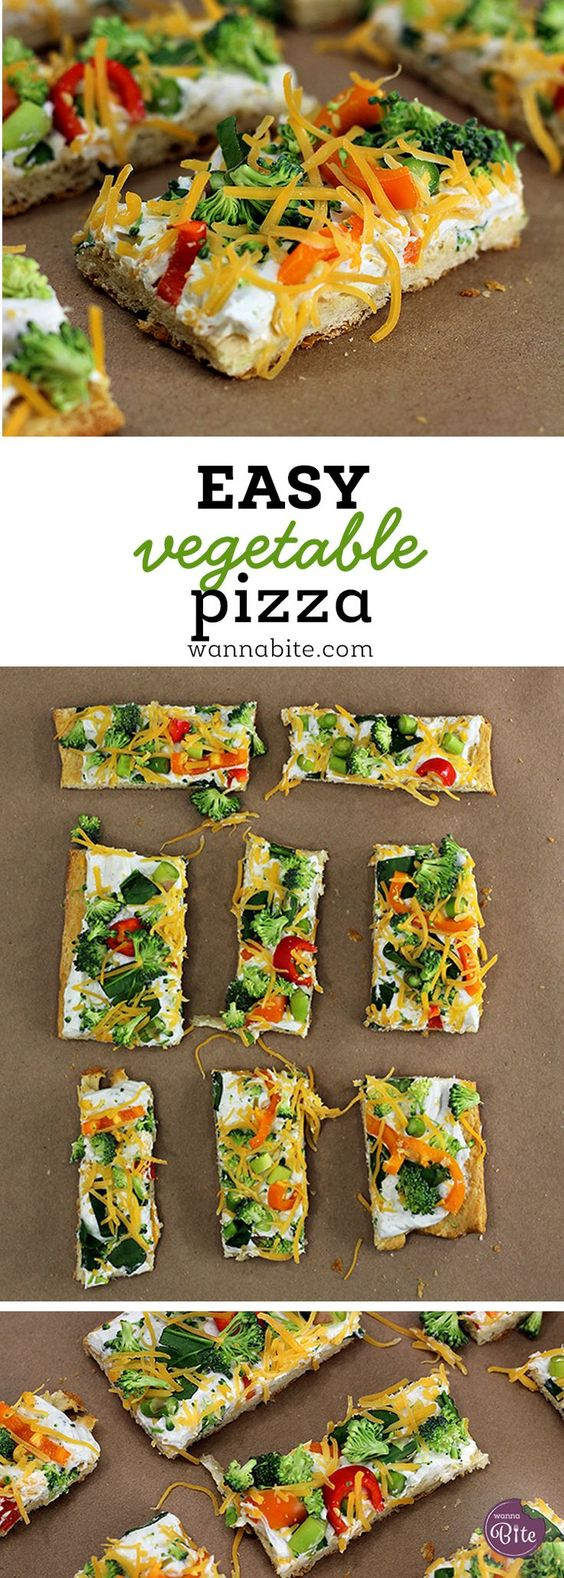 EASY VEGETABLE PIZZA